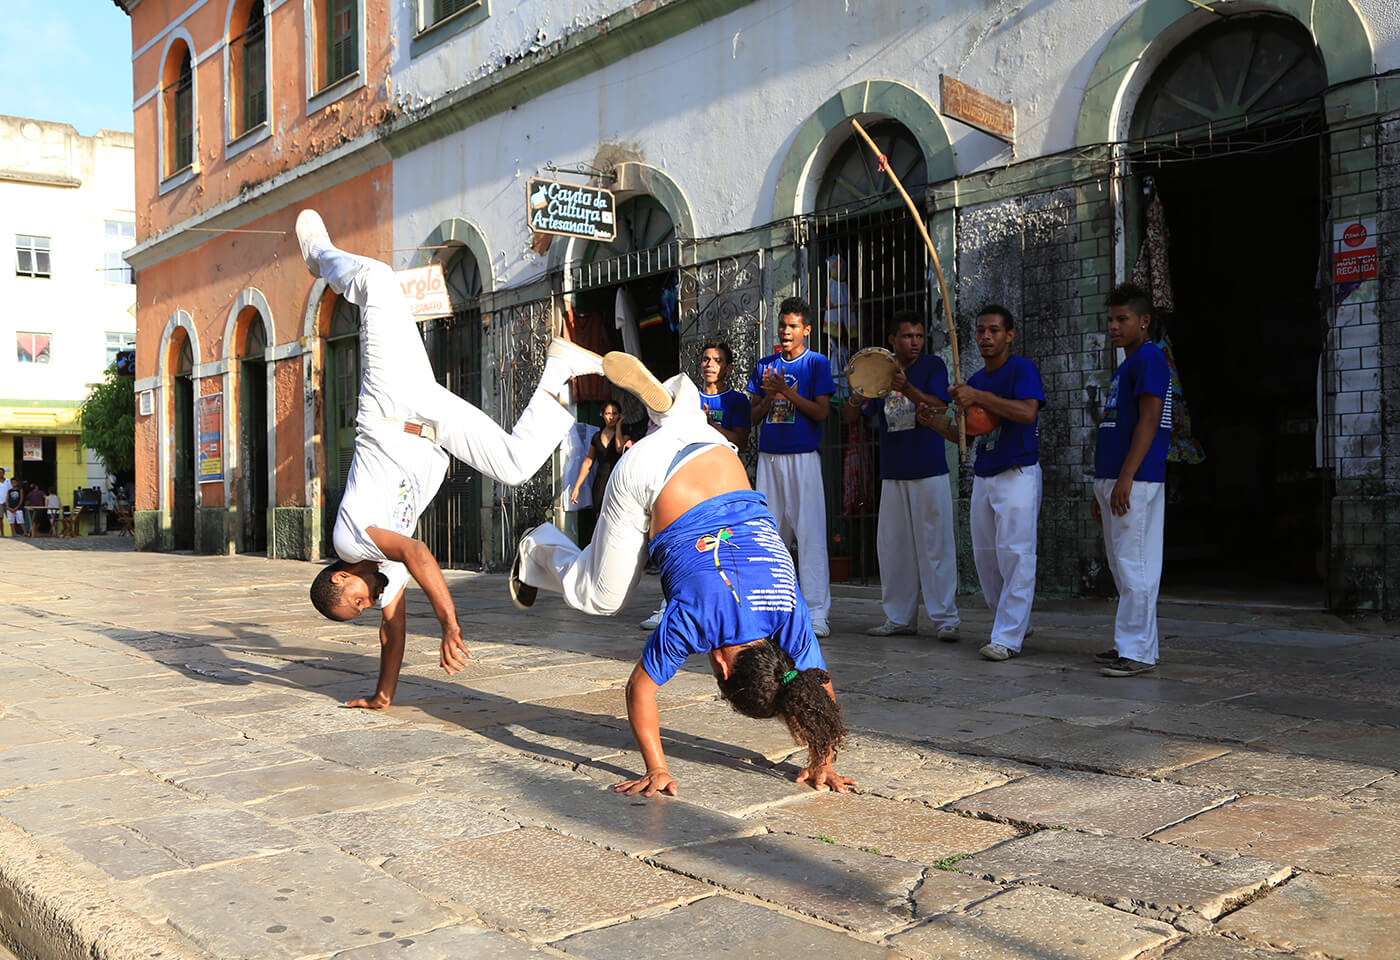 Men performing handstands